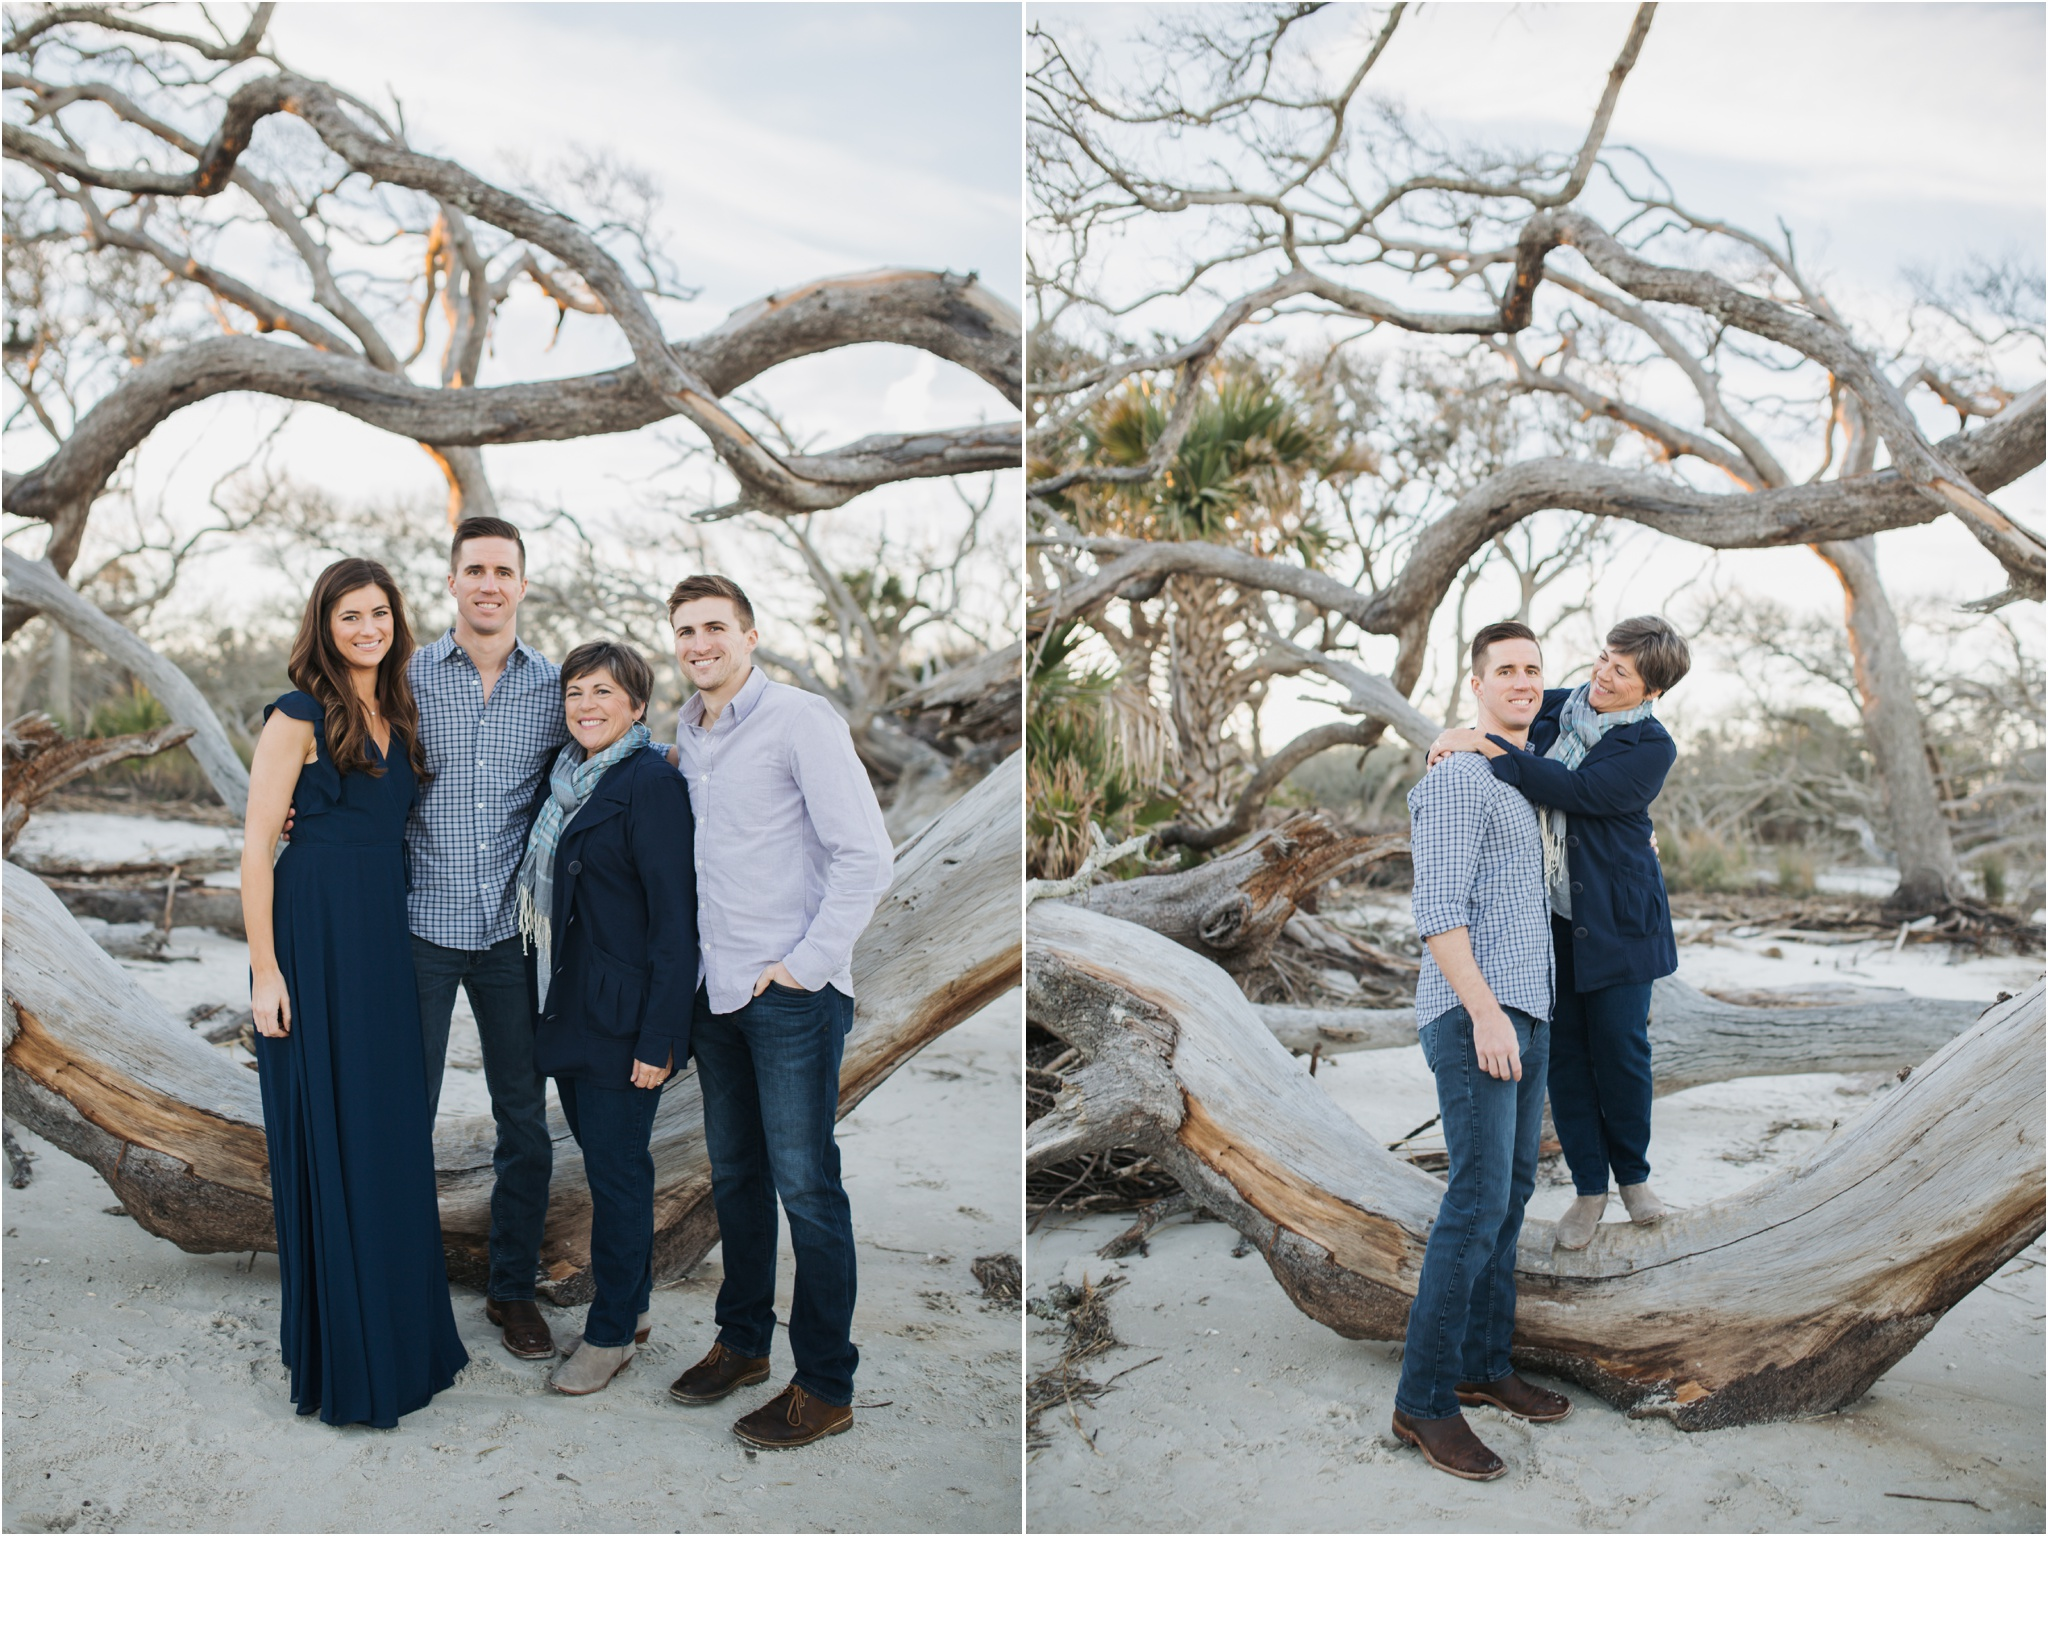 Rainey_Gregg_Photography_St._Simons_Island_Georgia_California_Wedding_Portrait_Photography_1552.jpg